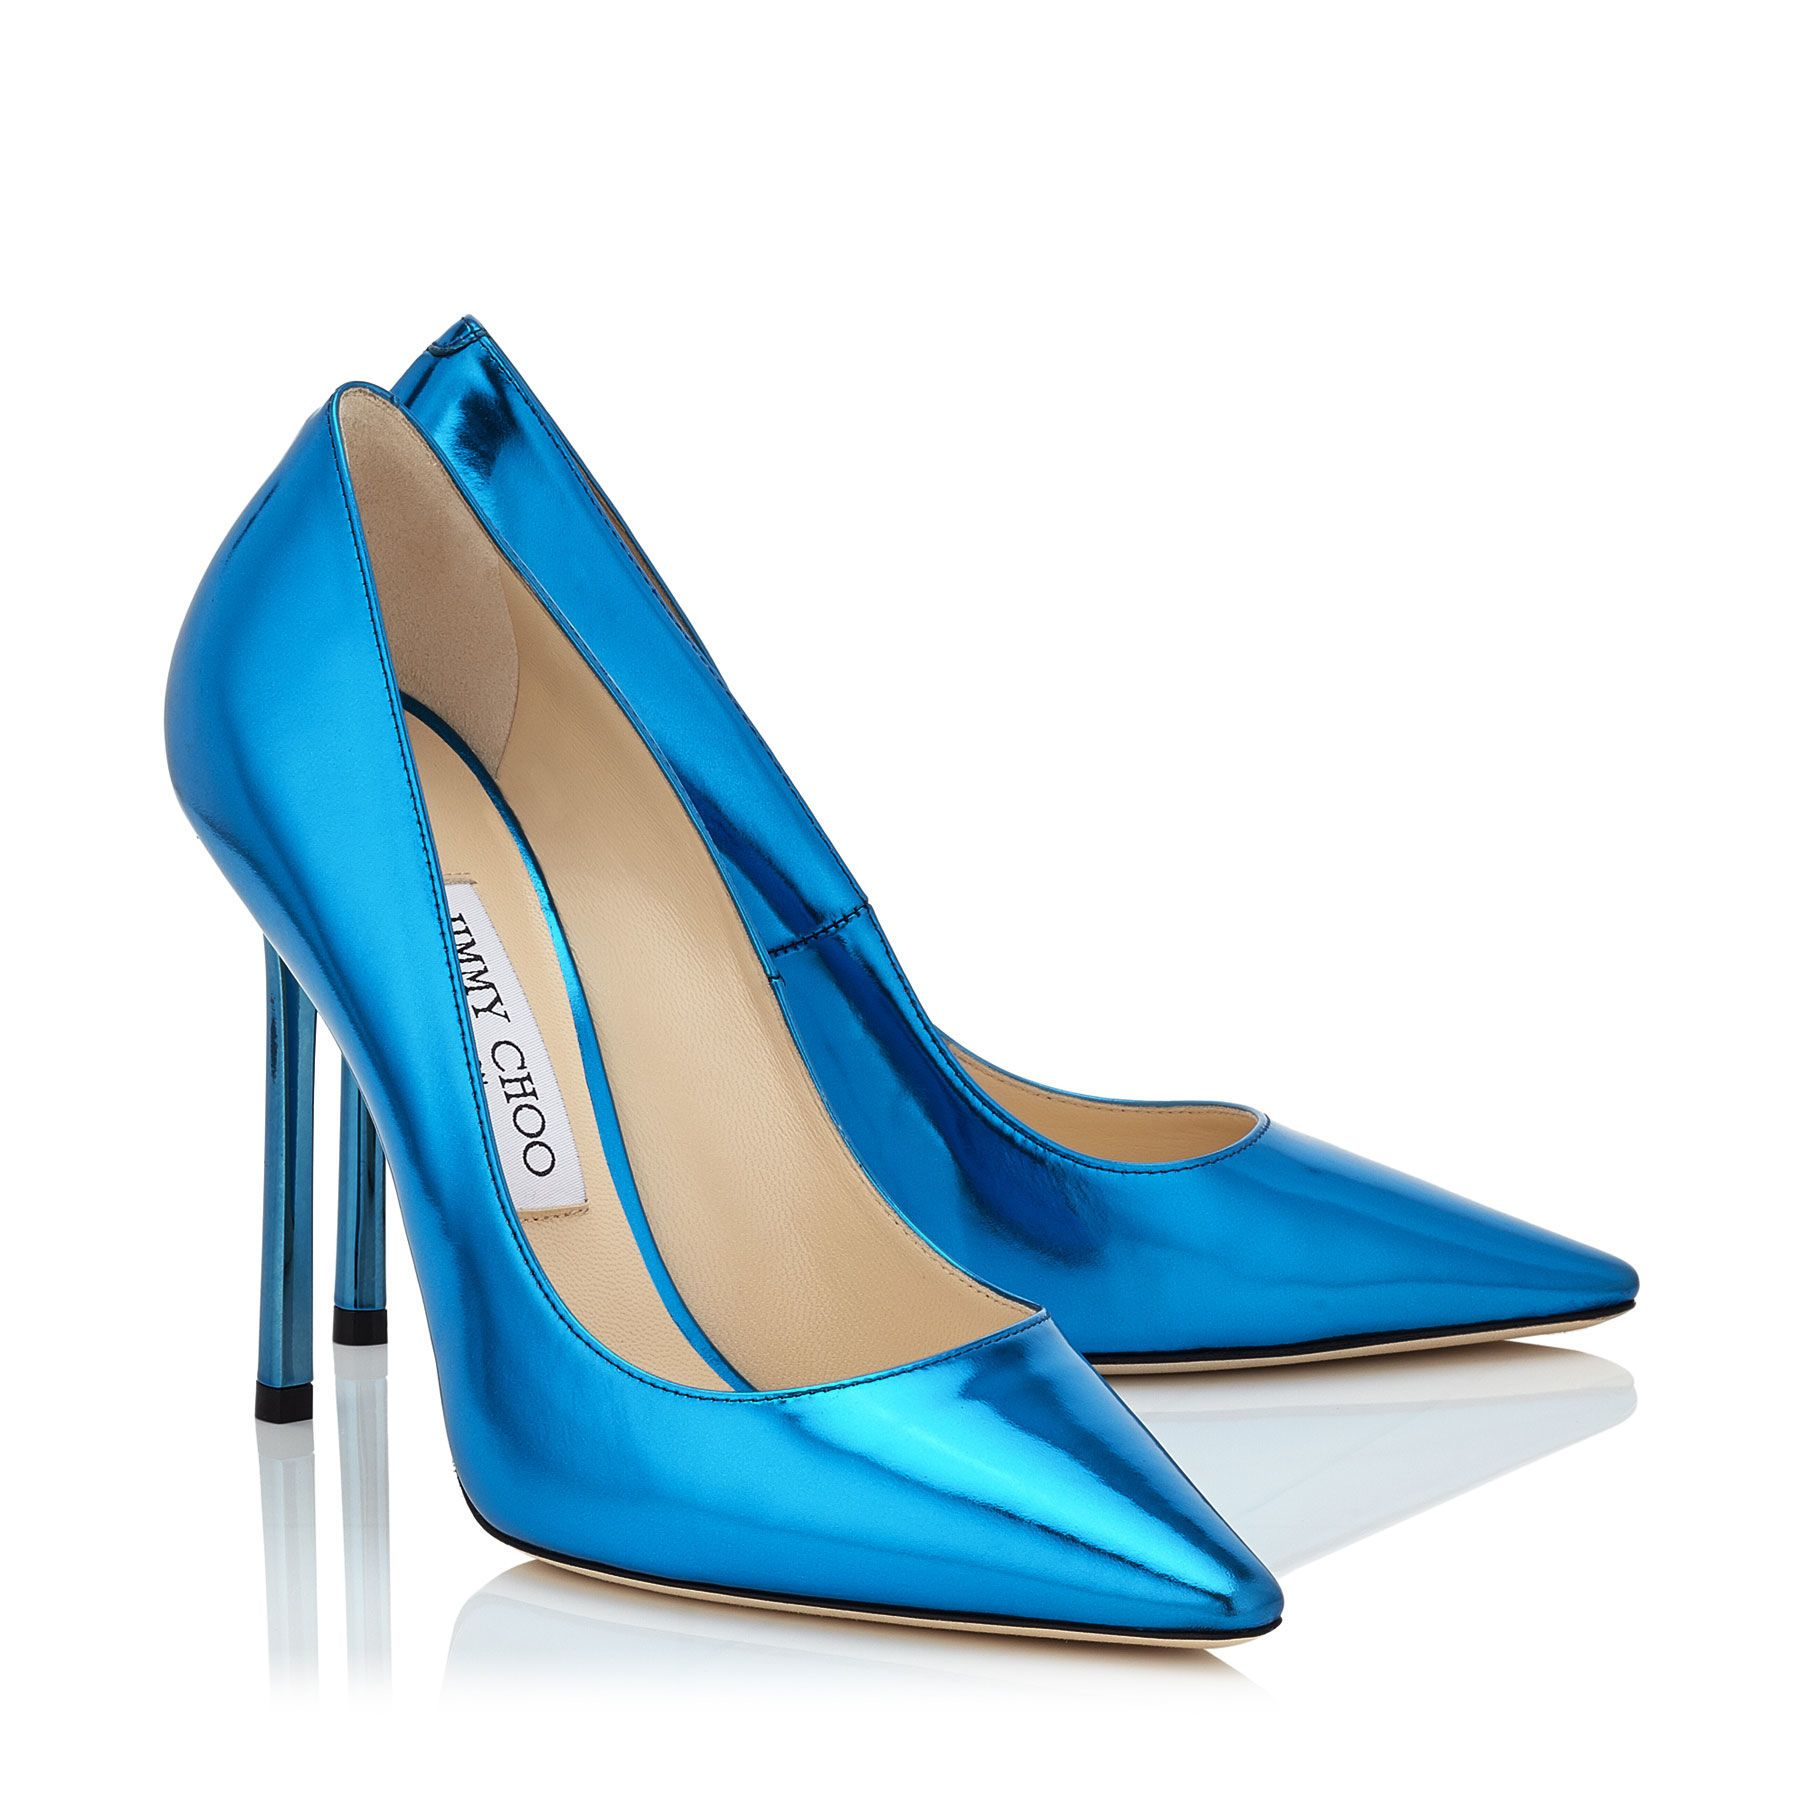 Robot Blue Mirror Leather Pointy Toe Pumps | Romy 110 | Pre Fall 16 | JIMMY CHOO